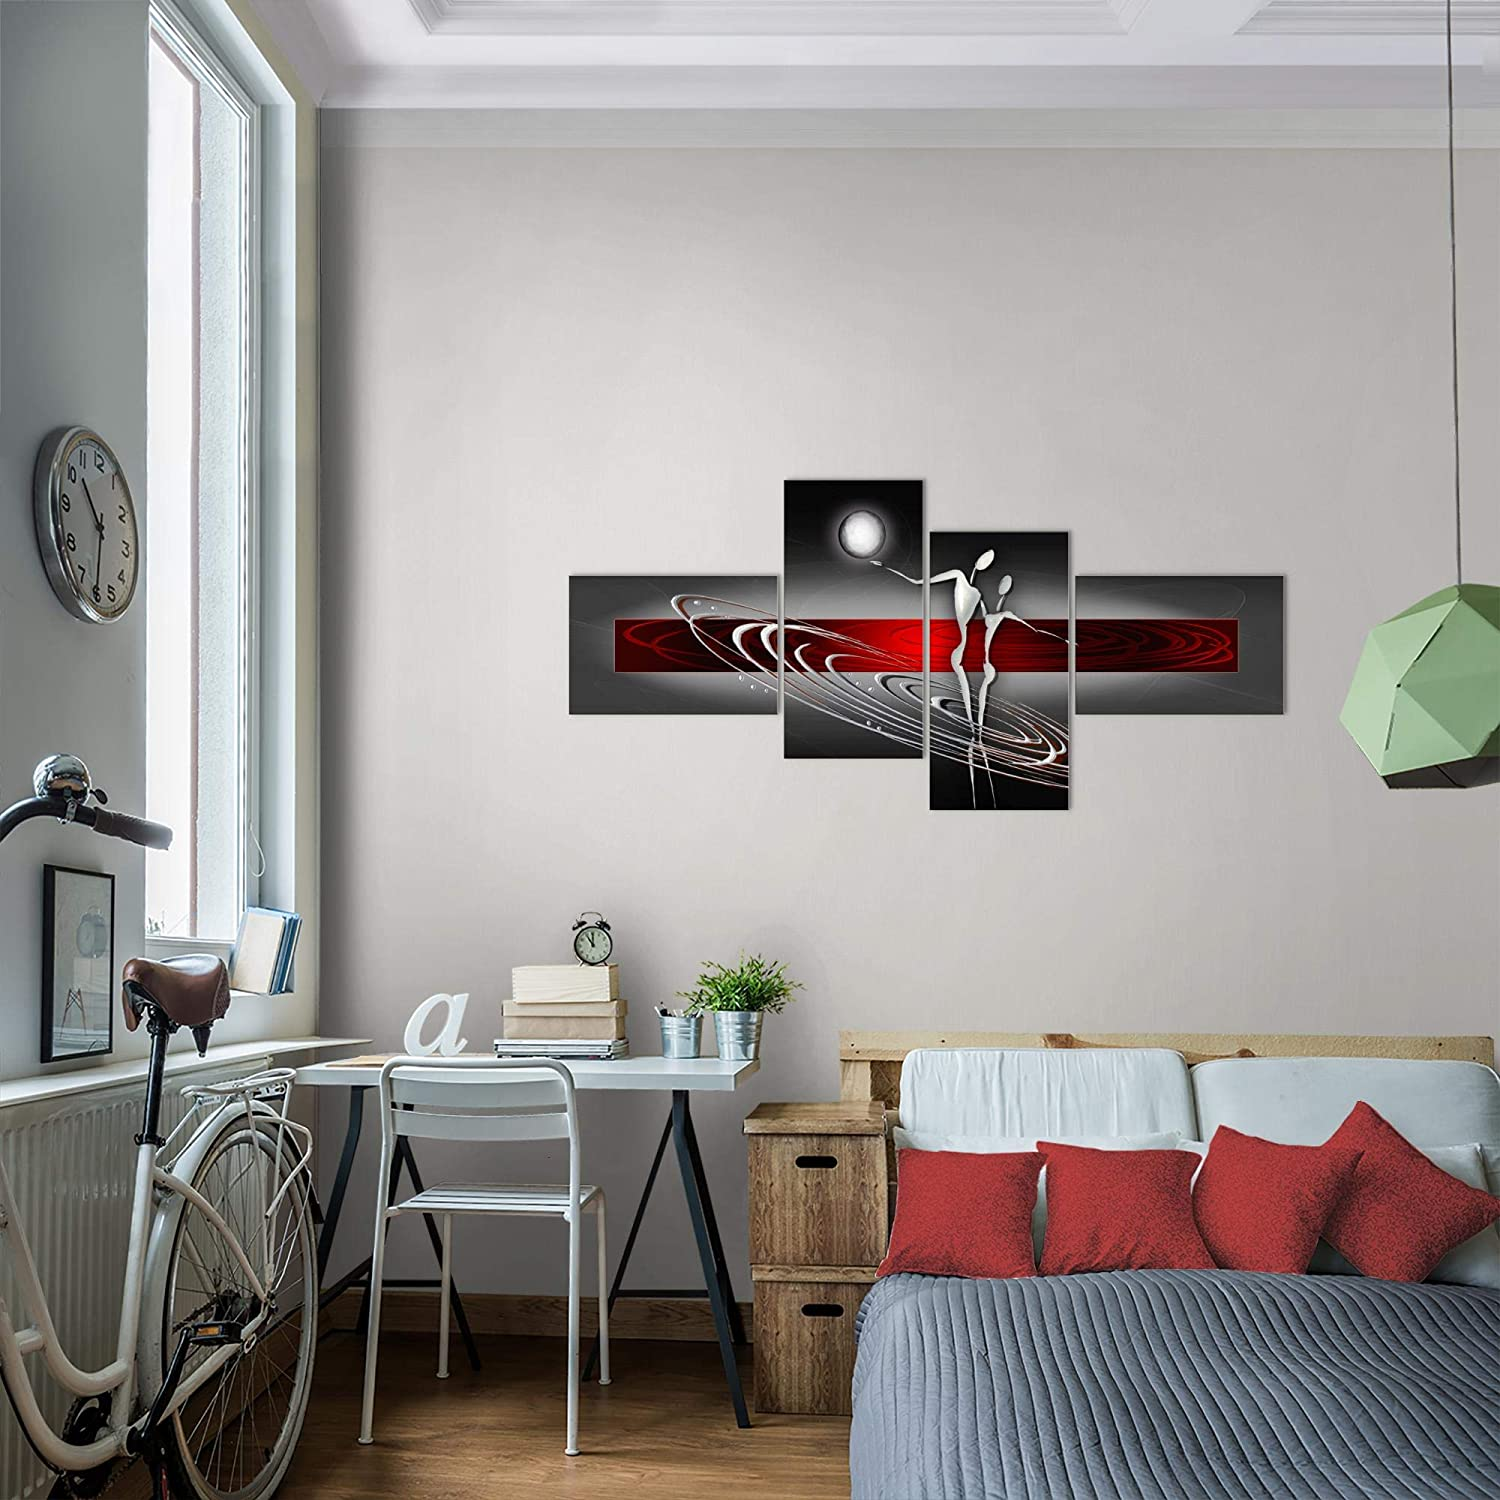 Taille XXL Salon Appartement D/écoration Photos dart Rouge 4 Parties MADE IN GERMANY pr/êt /à accrocher 301245a Photo Figures abstraites D/écoration Murale 150 x 60 cm Toison